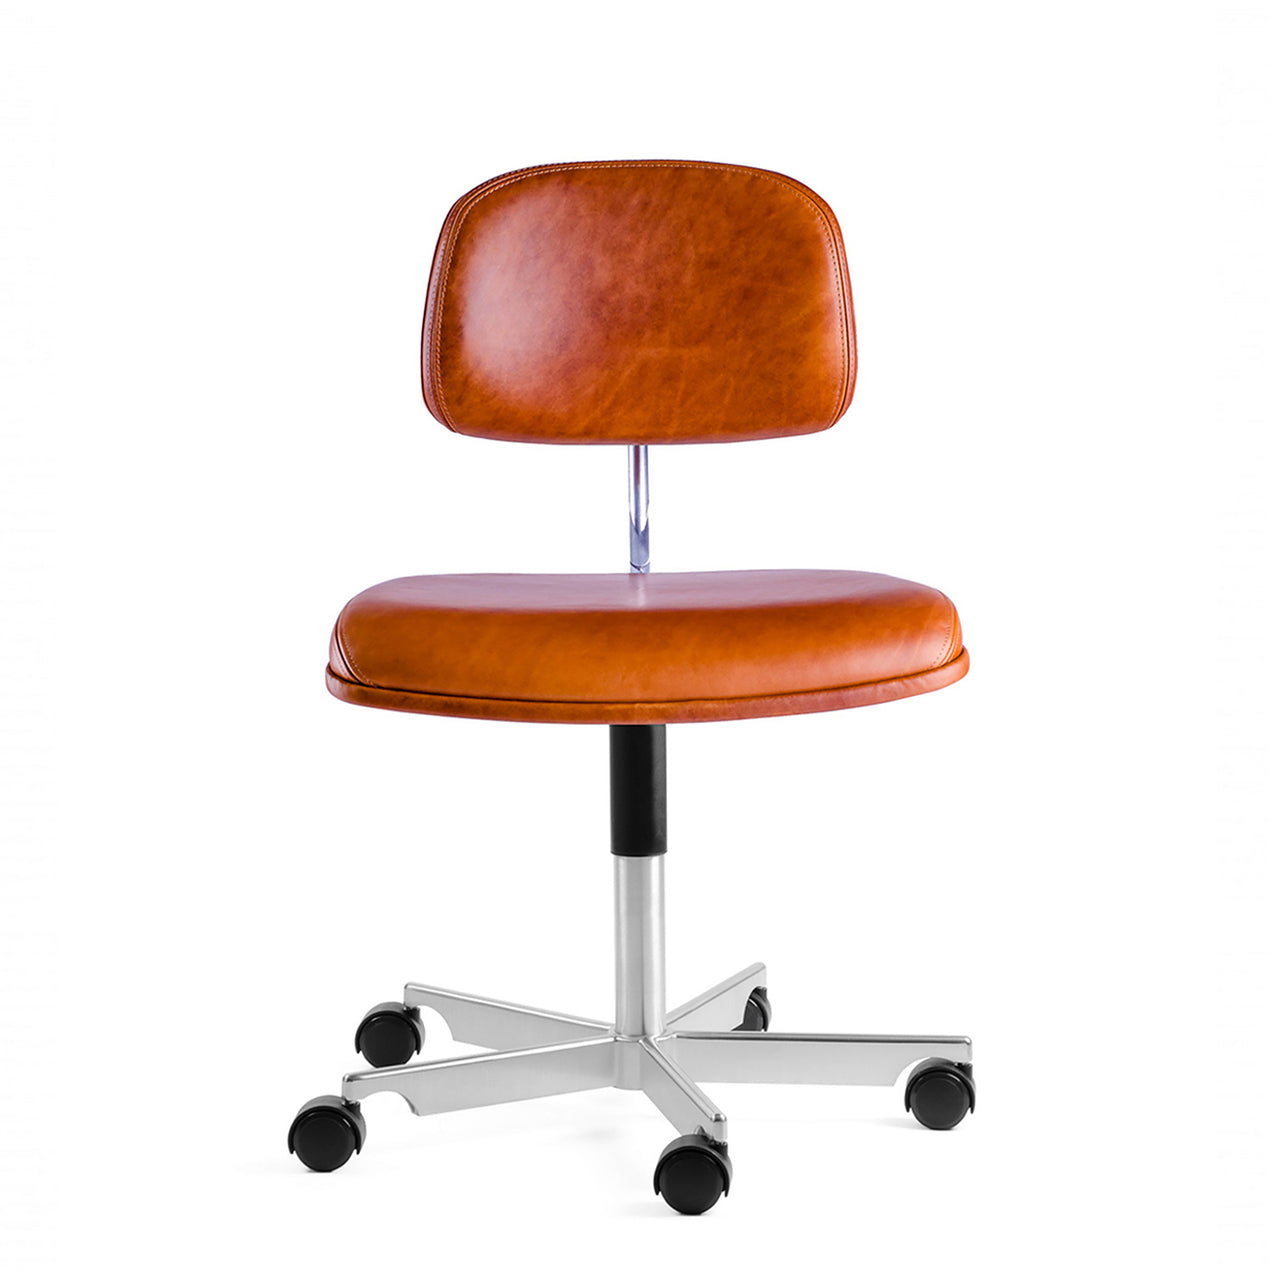 Kevi Chair 2534u: Fully Upholstered